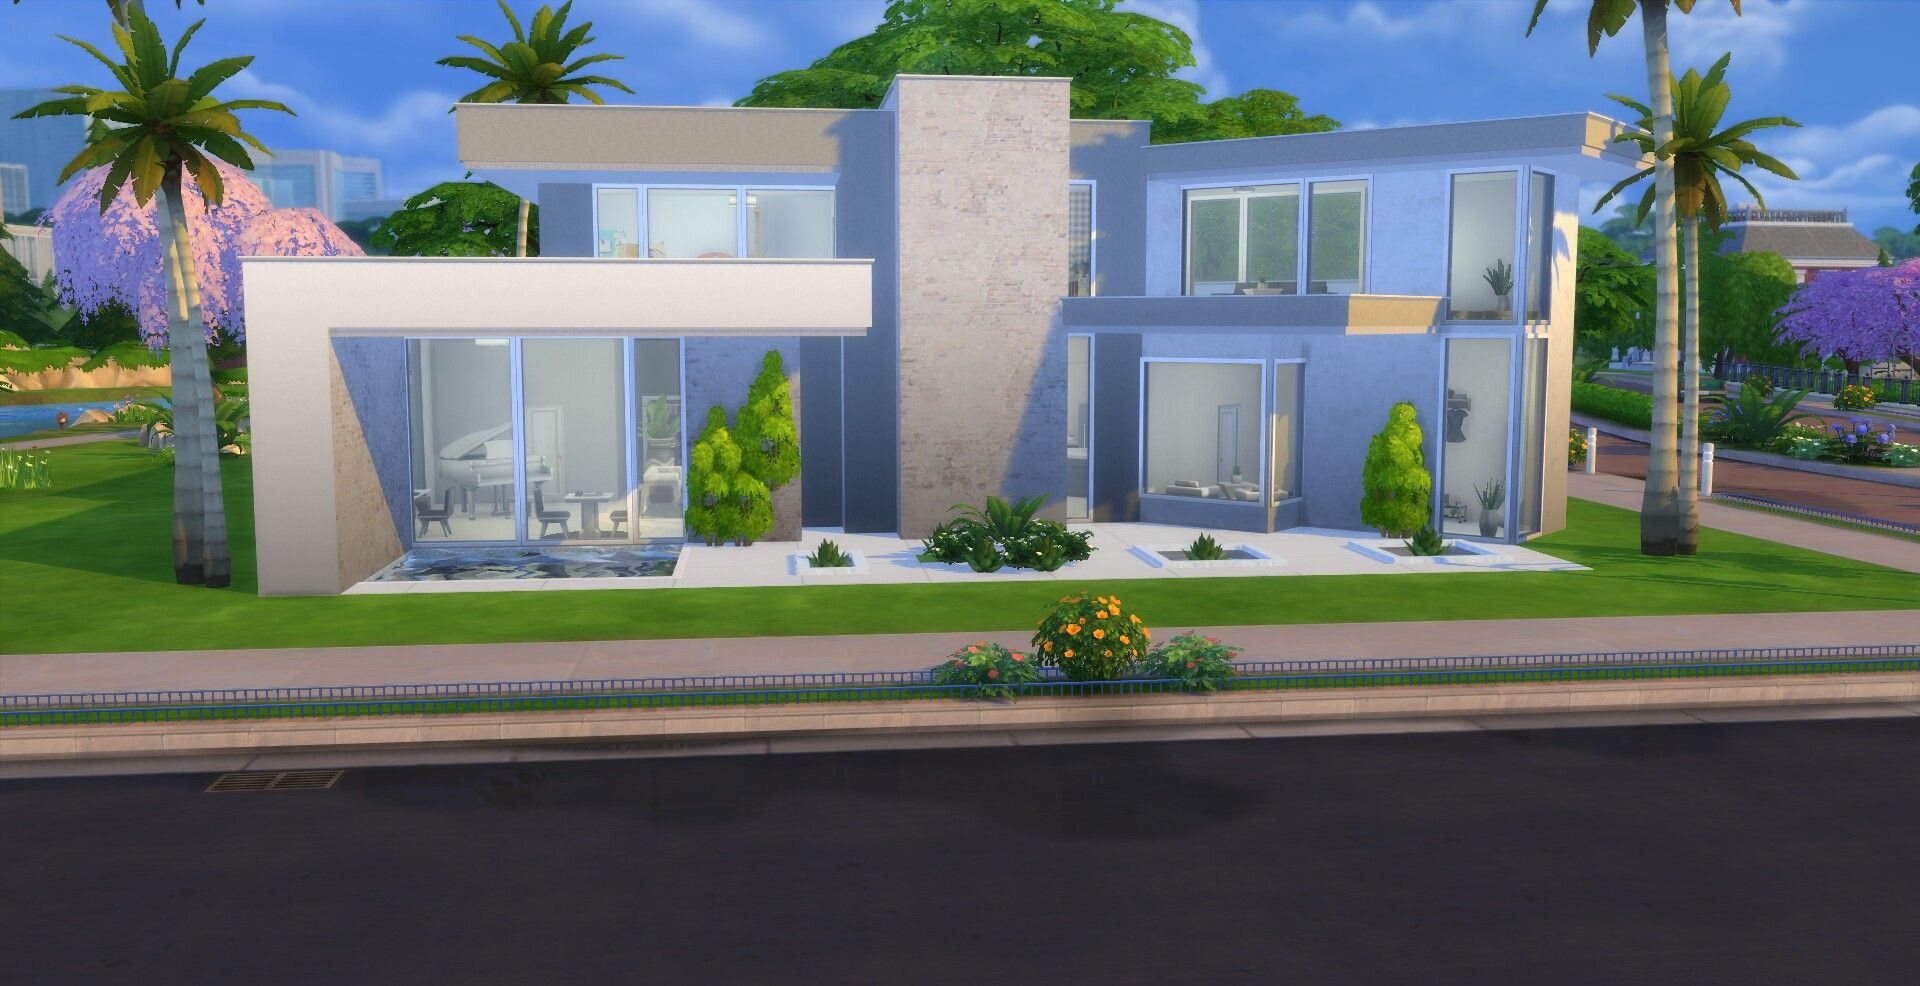 Sims 4 Modern House By Selinagr96 House Modern Architecture The